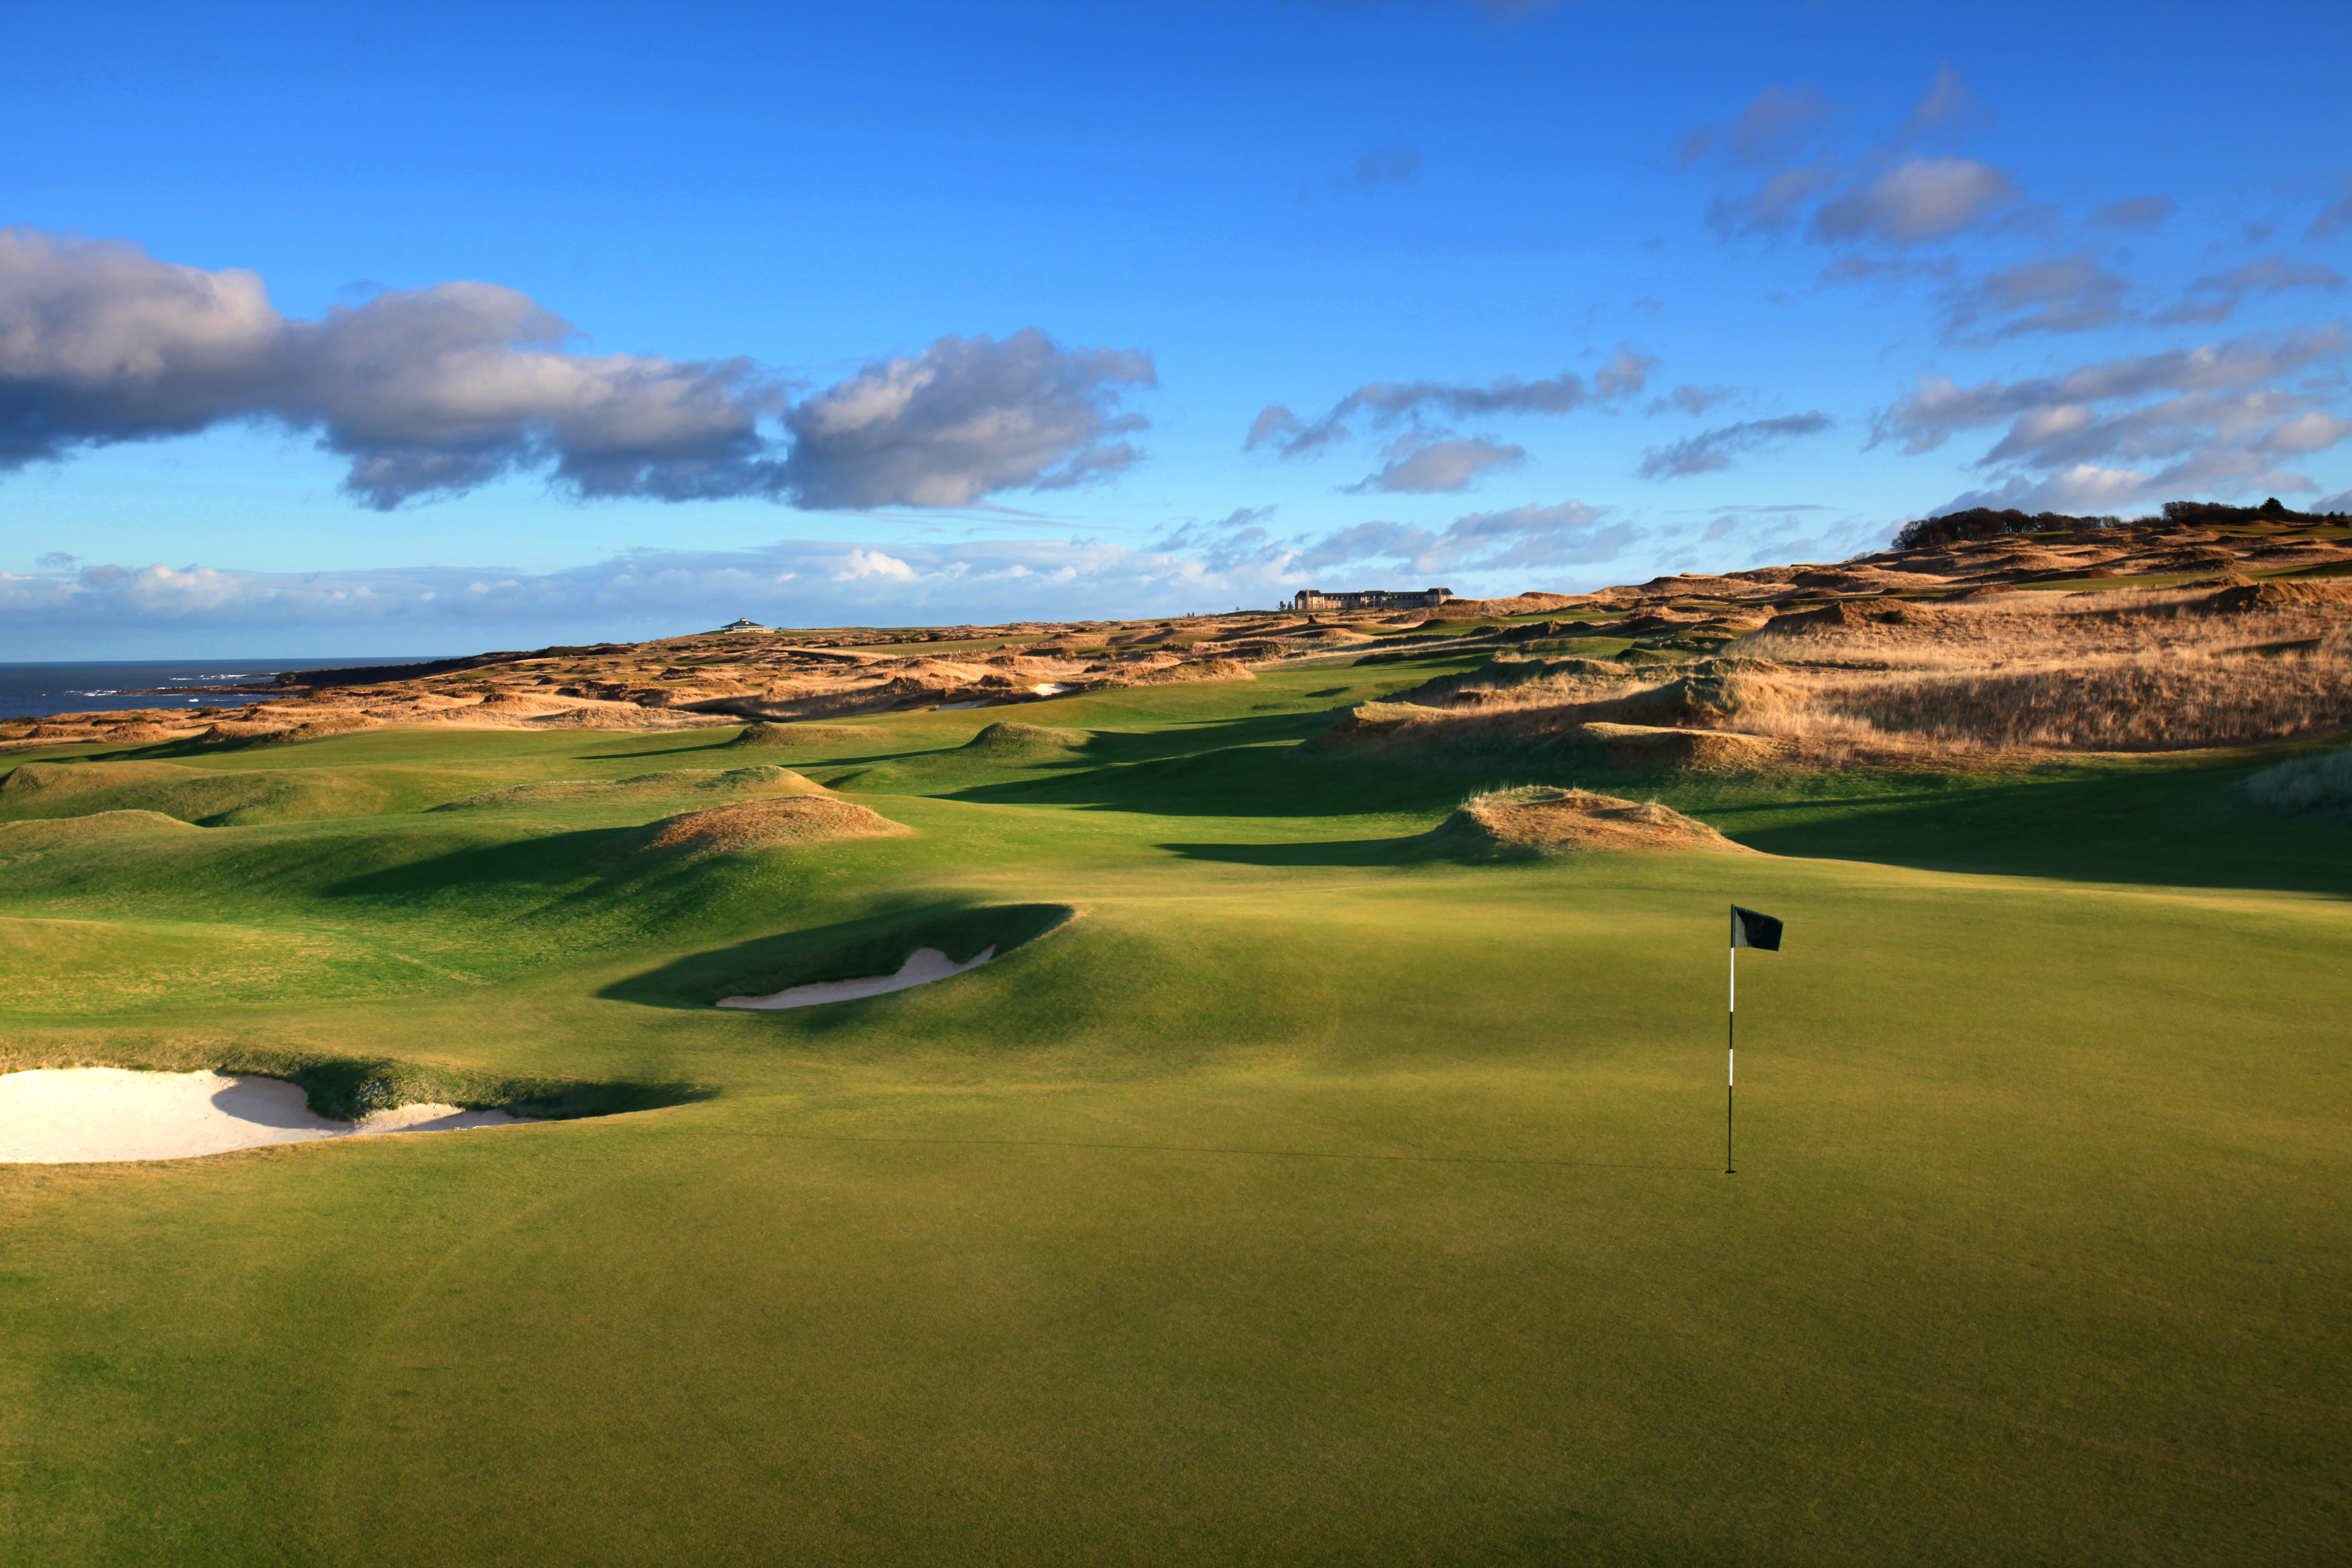 Overview of golf course named St Andrews - The Castle Course